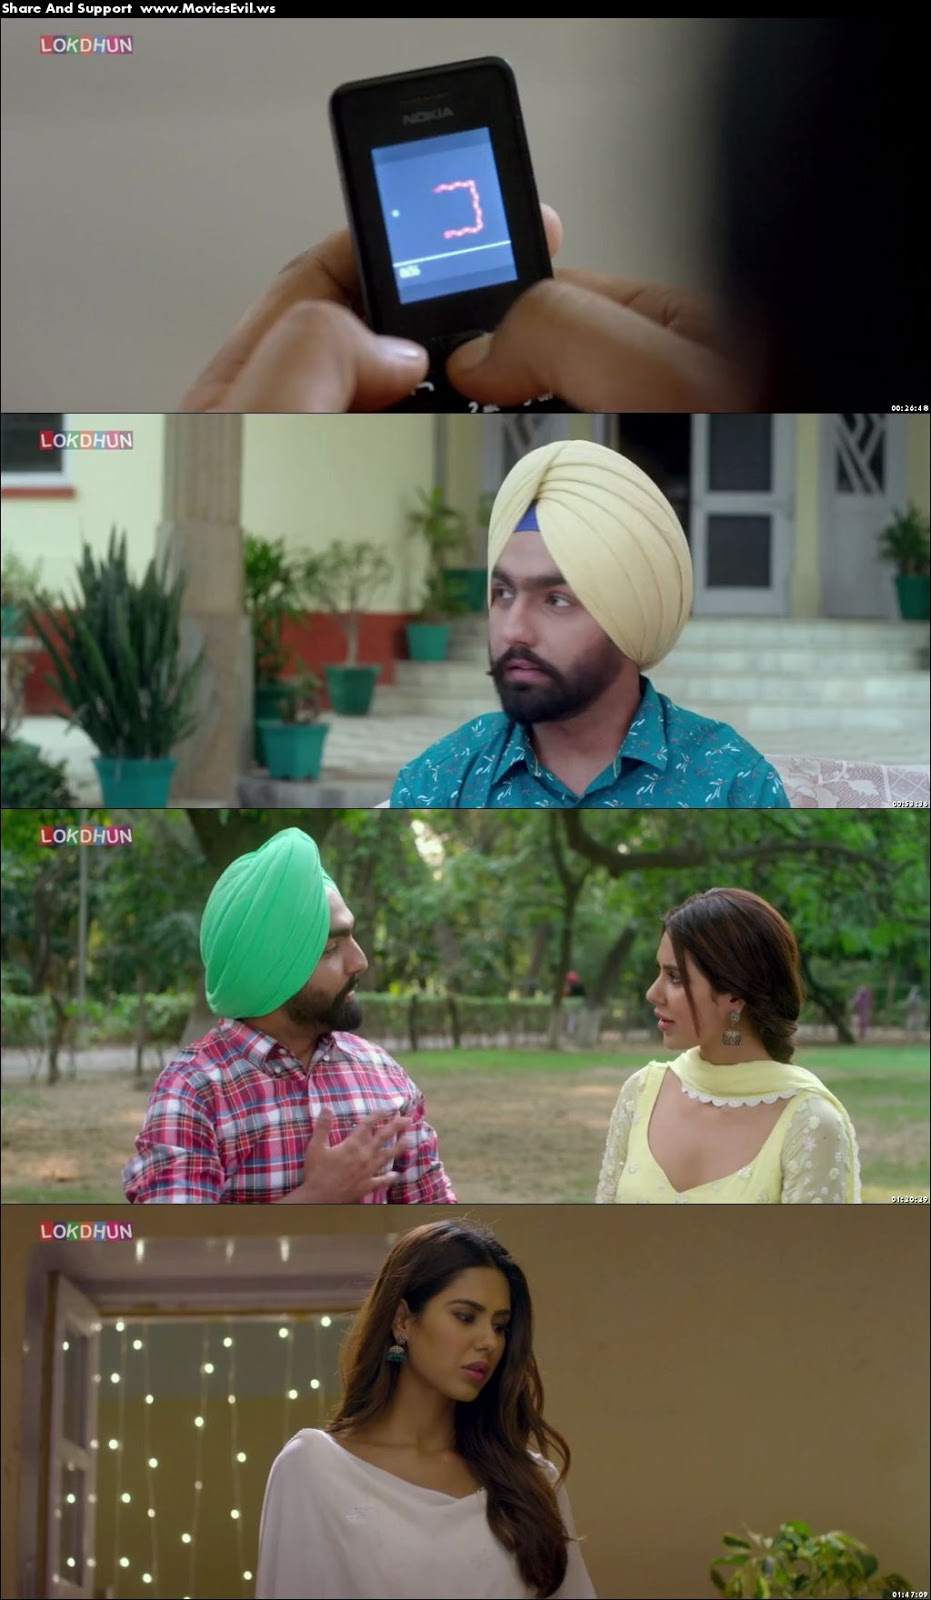 Nikka Zaildar 2016 720p HDRip x264 Punjabi Movie Download,Nikka Zaildar 2016 full movie download,Nikka Zaildar 2016 direct link download, 300 mb download,Nikka Zaildar 2016 punjabi movie download,Nikka Zaildar 2016 extramovies download,Nikka Zaildar 2016 downloadhub download,Nikka Zaildar 2016 worldfree4u download,Nikka Zaildar 2016 moviescounter download